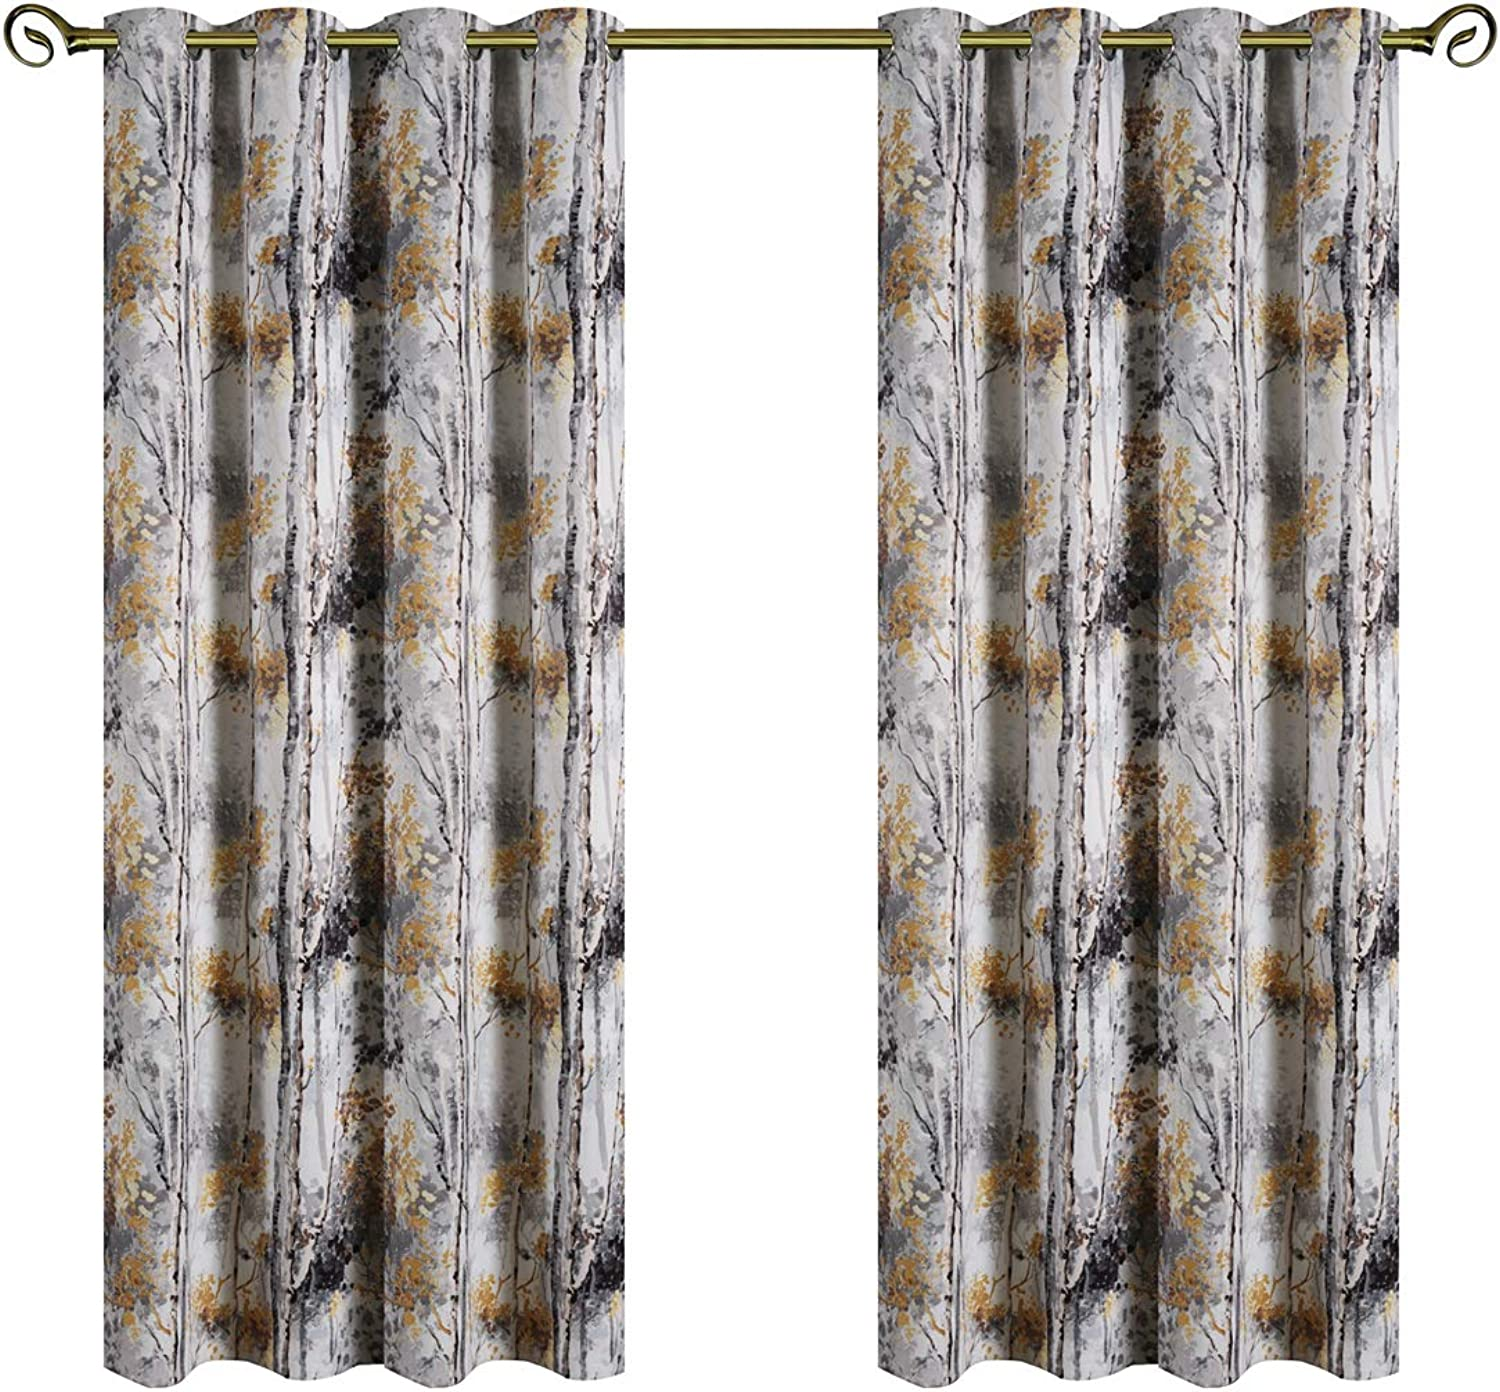 Kotile Grey Blackout Curtains for Bedroom Living Room 95 Inch Length 2 Panels, Home Decor Window Treatment Thermal Insulated Ring Top Curtains with colorful Tree Floral Design Print